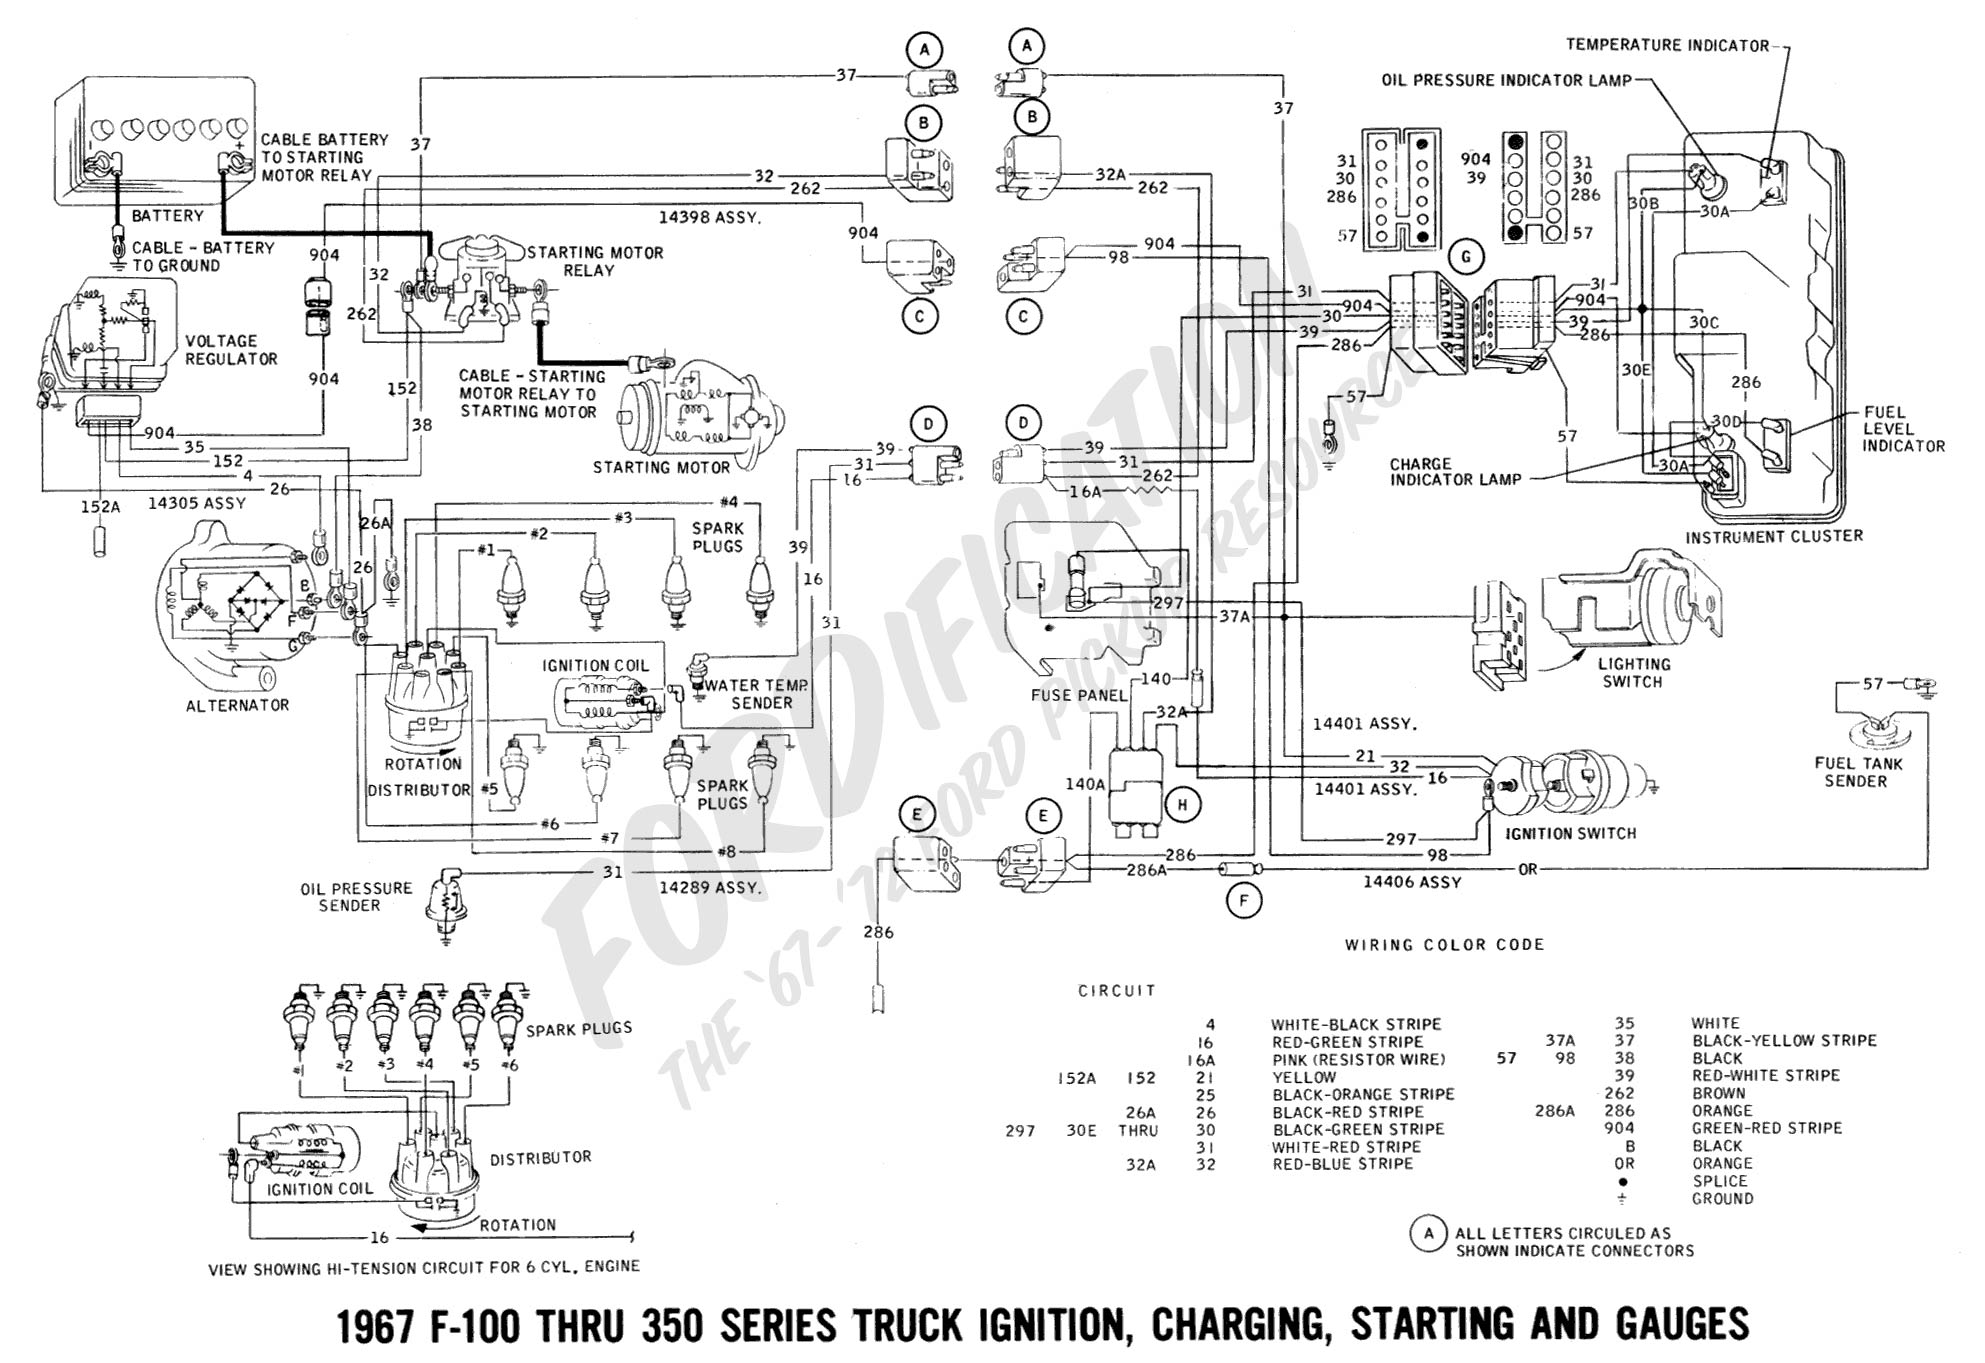 1966 ford f100 wiring schematic 1966 image wiring shunt trip wiring diagram images jpeg 146kb elevator shunt trip on 1966 ford f100 wiring schematic